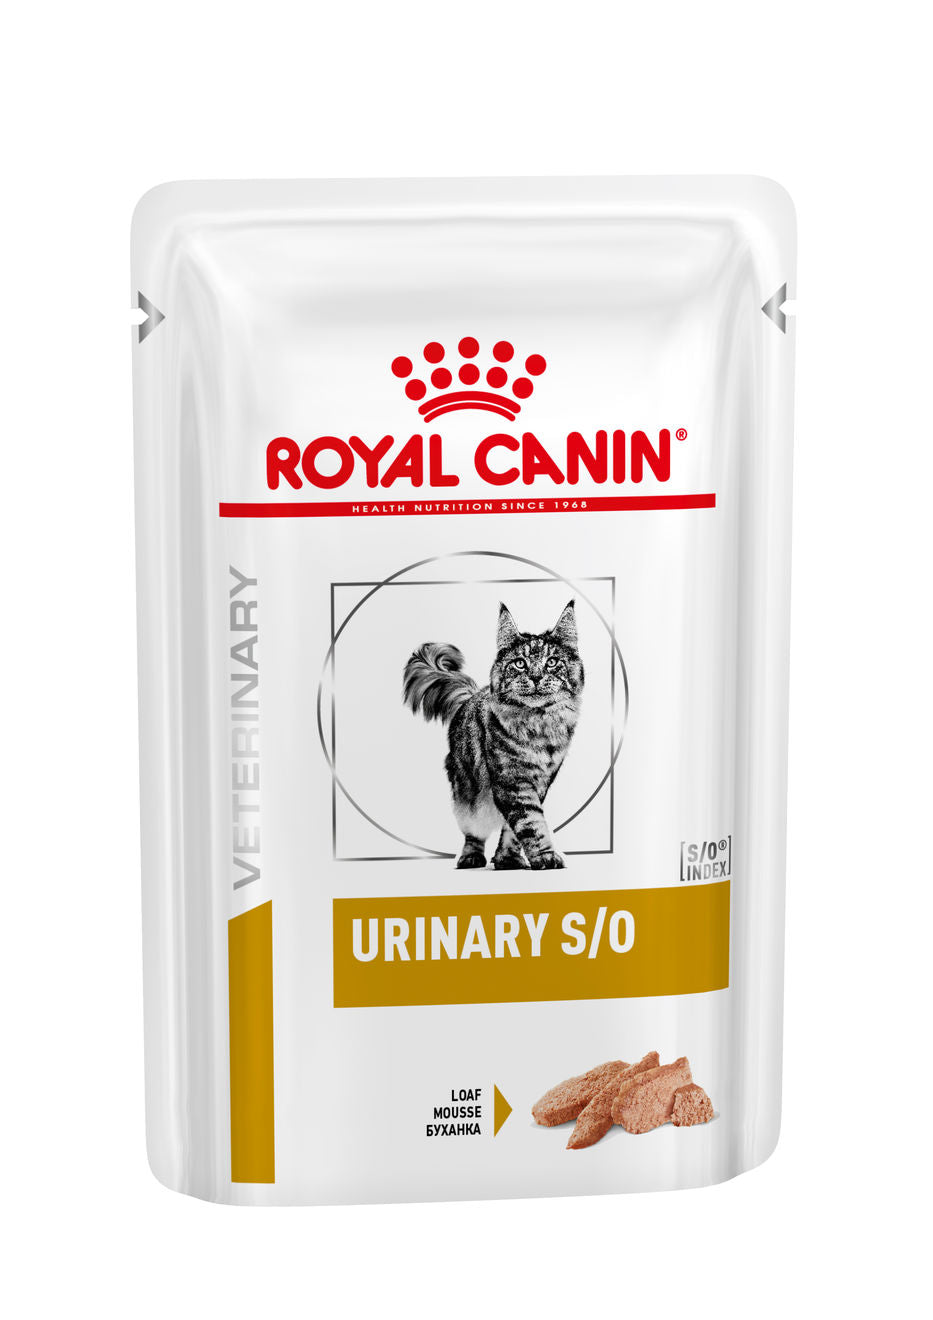 Royal Canin Urinary S/O with Chicken Pouch(Loaf) for Cats